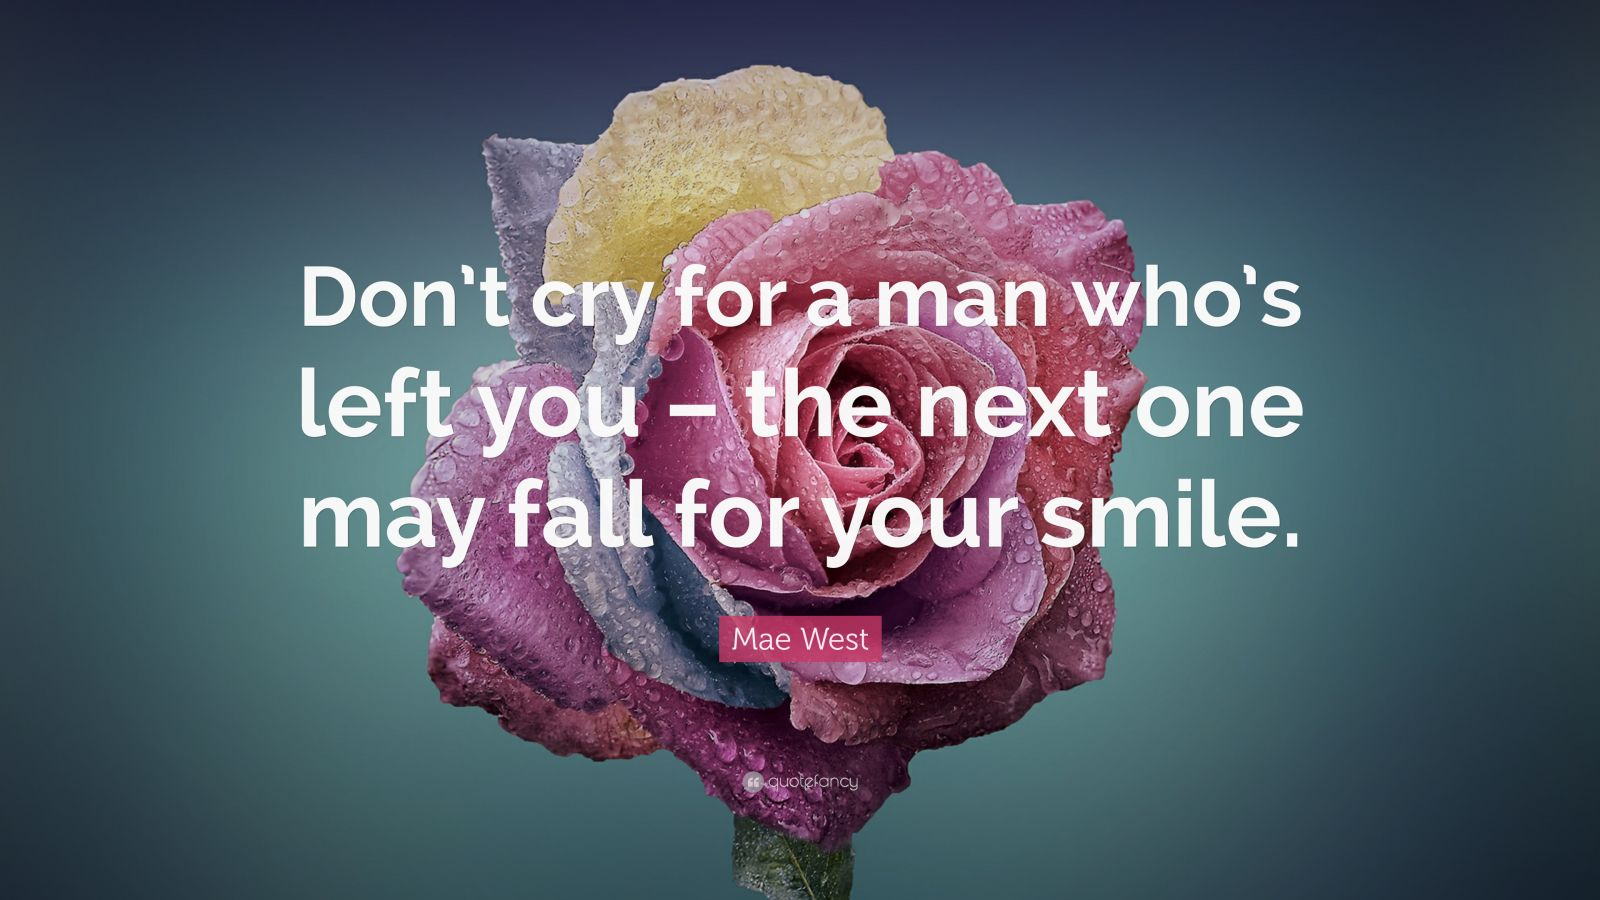 Flower Wallpaper With Friendship Quotes Mae West Quote Don T Cry For A Man Who S Left You The